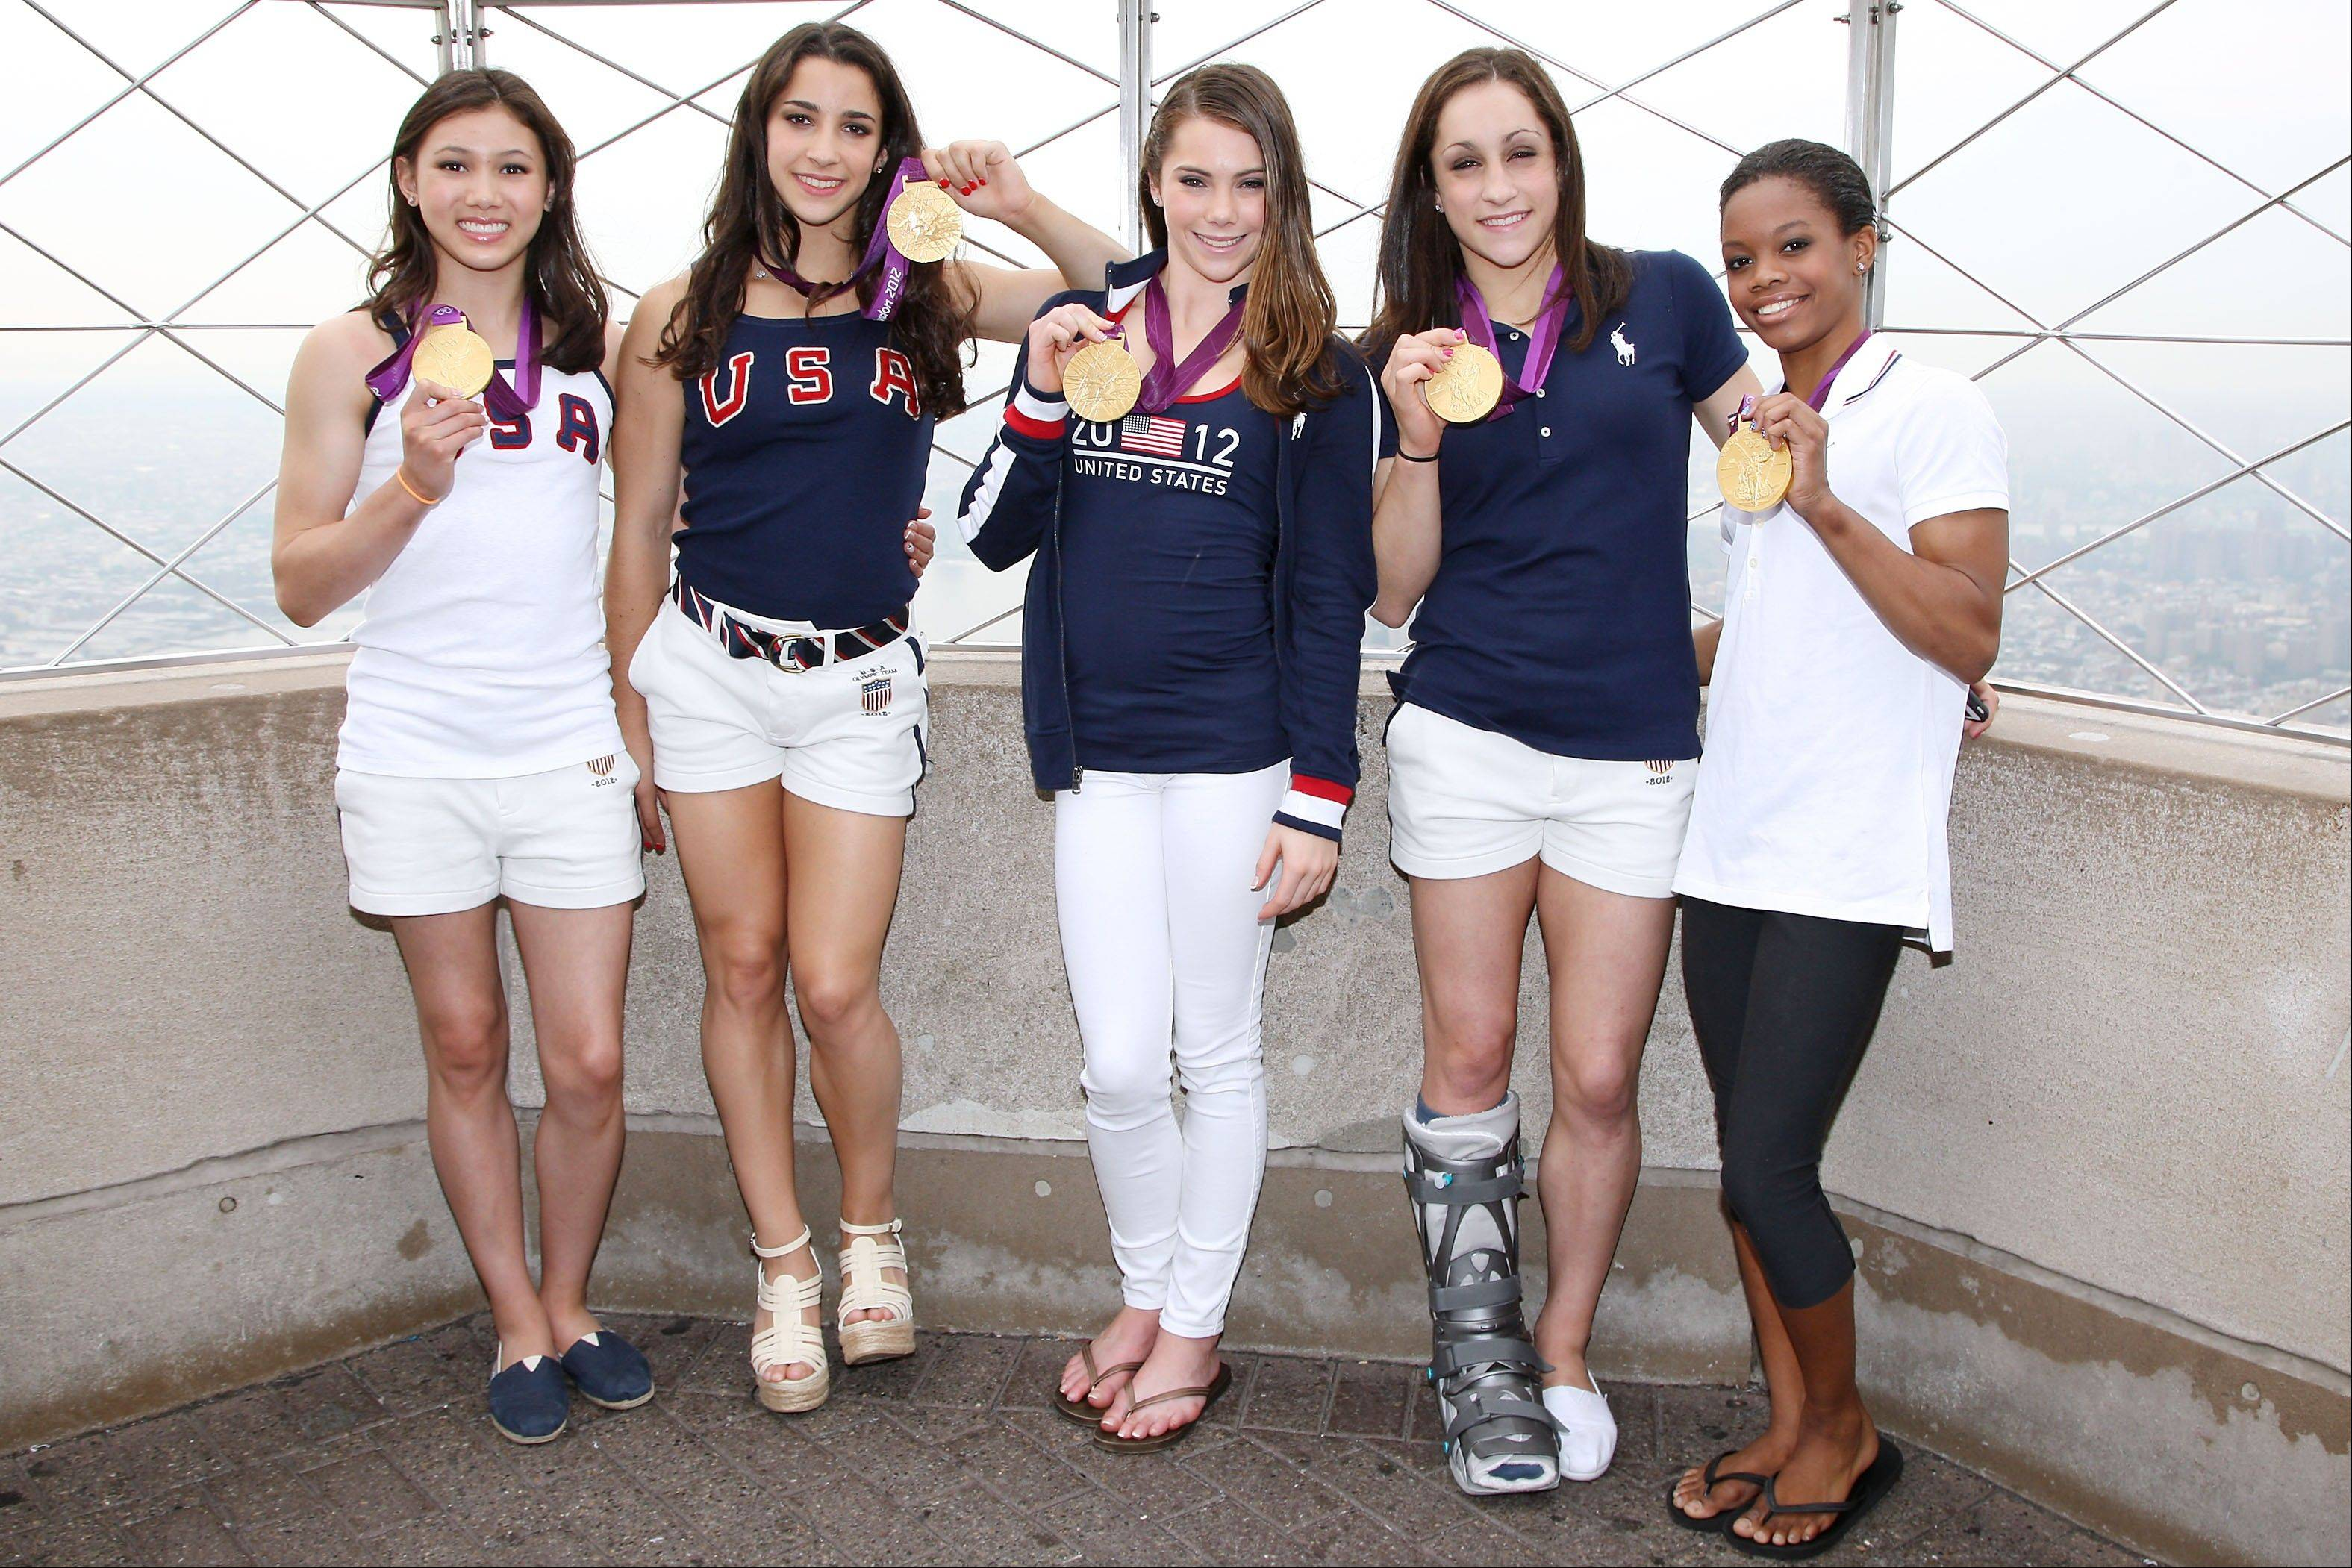 This image released by Starpix shows the gold medal-winning US Women's Gymnastics Team, from left, Kyla Ross, Aly Raisman, McKayla Marone, Jordyn Wieber and Gabby Douglas pose on the observation deck of the Empire State Building, Tuesday, Aug. 14, 2012 in New York.